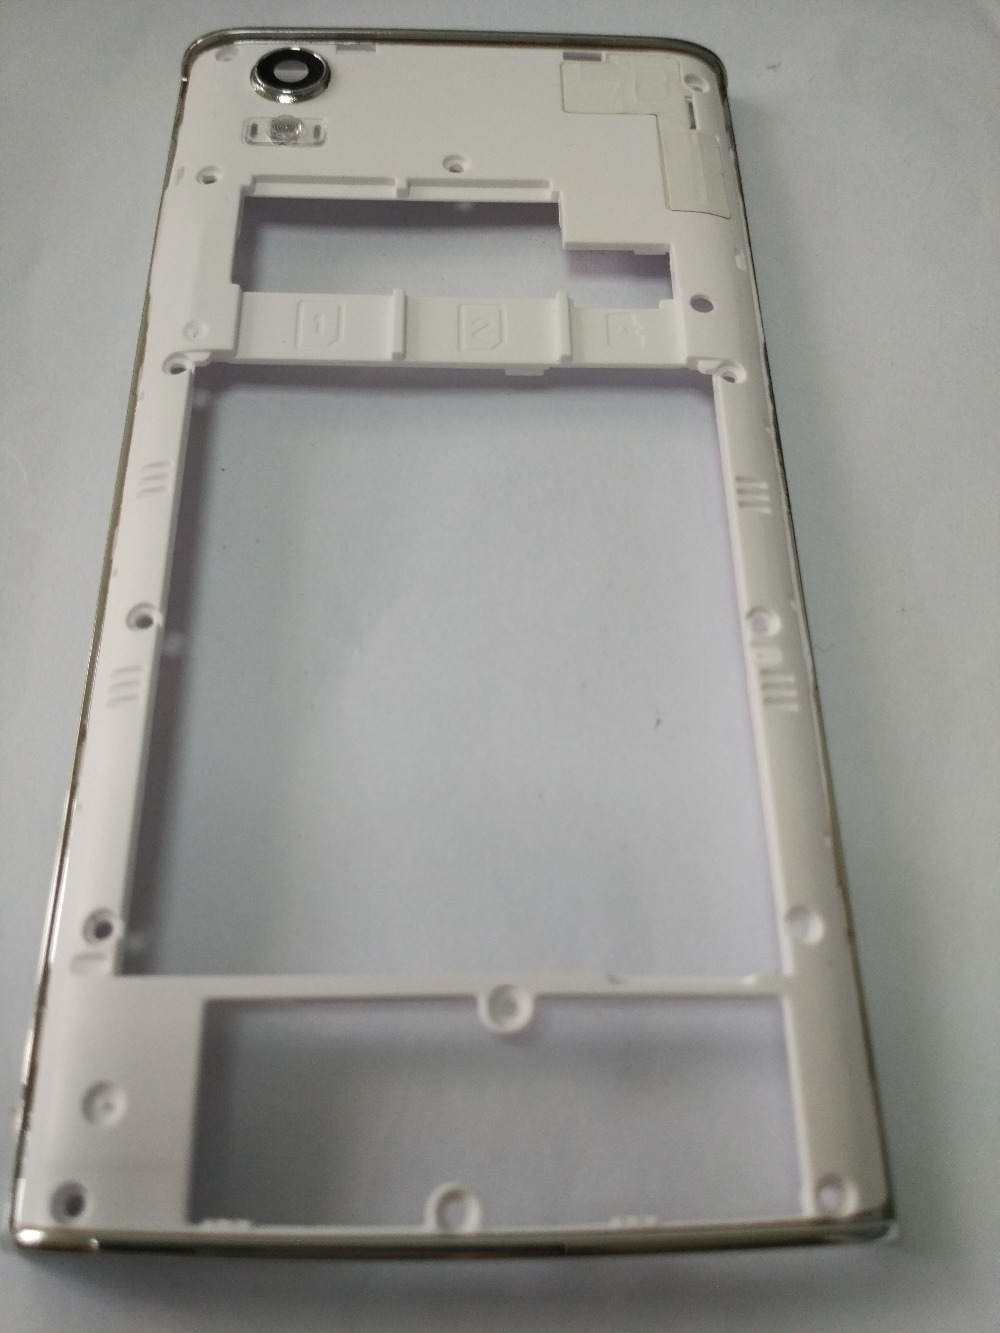 Leagoo lead 3s frame 100% new original back repair part replacement for phone Free shipping+Tracking number